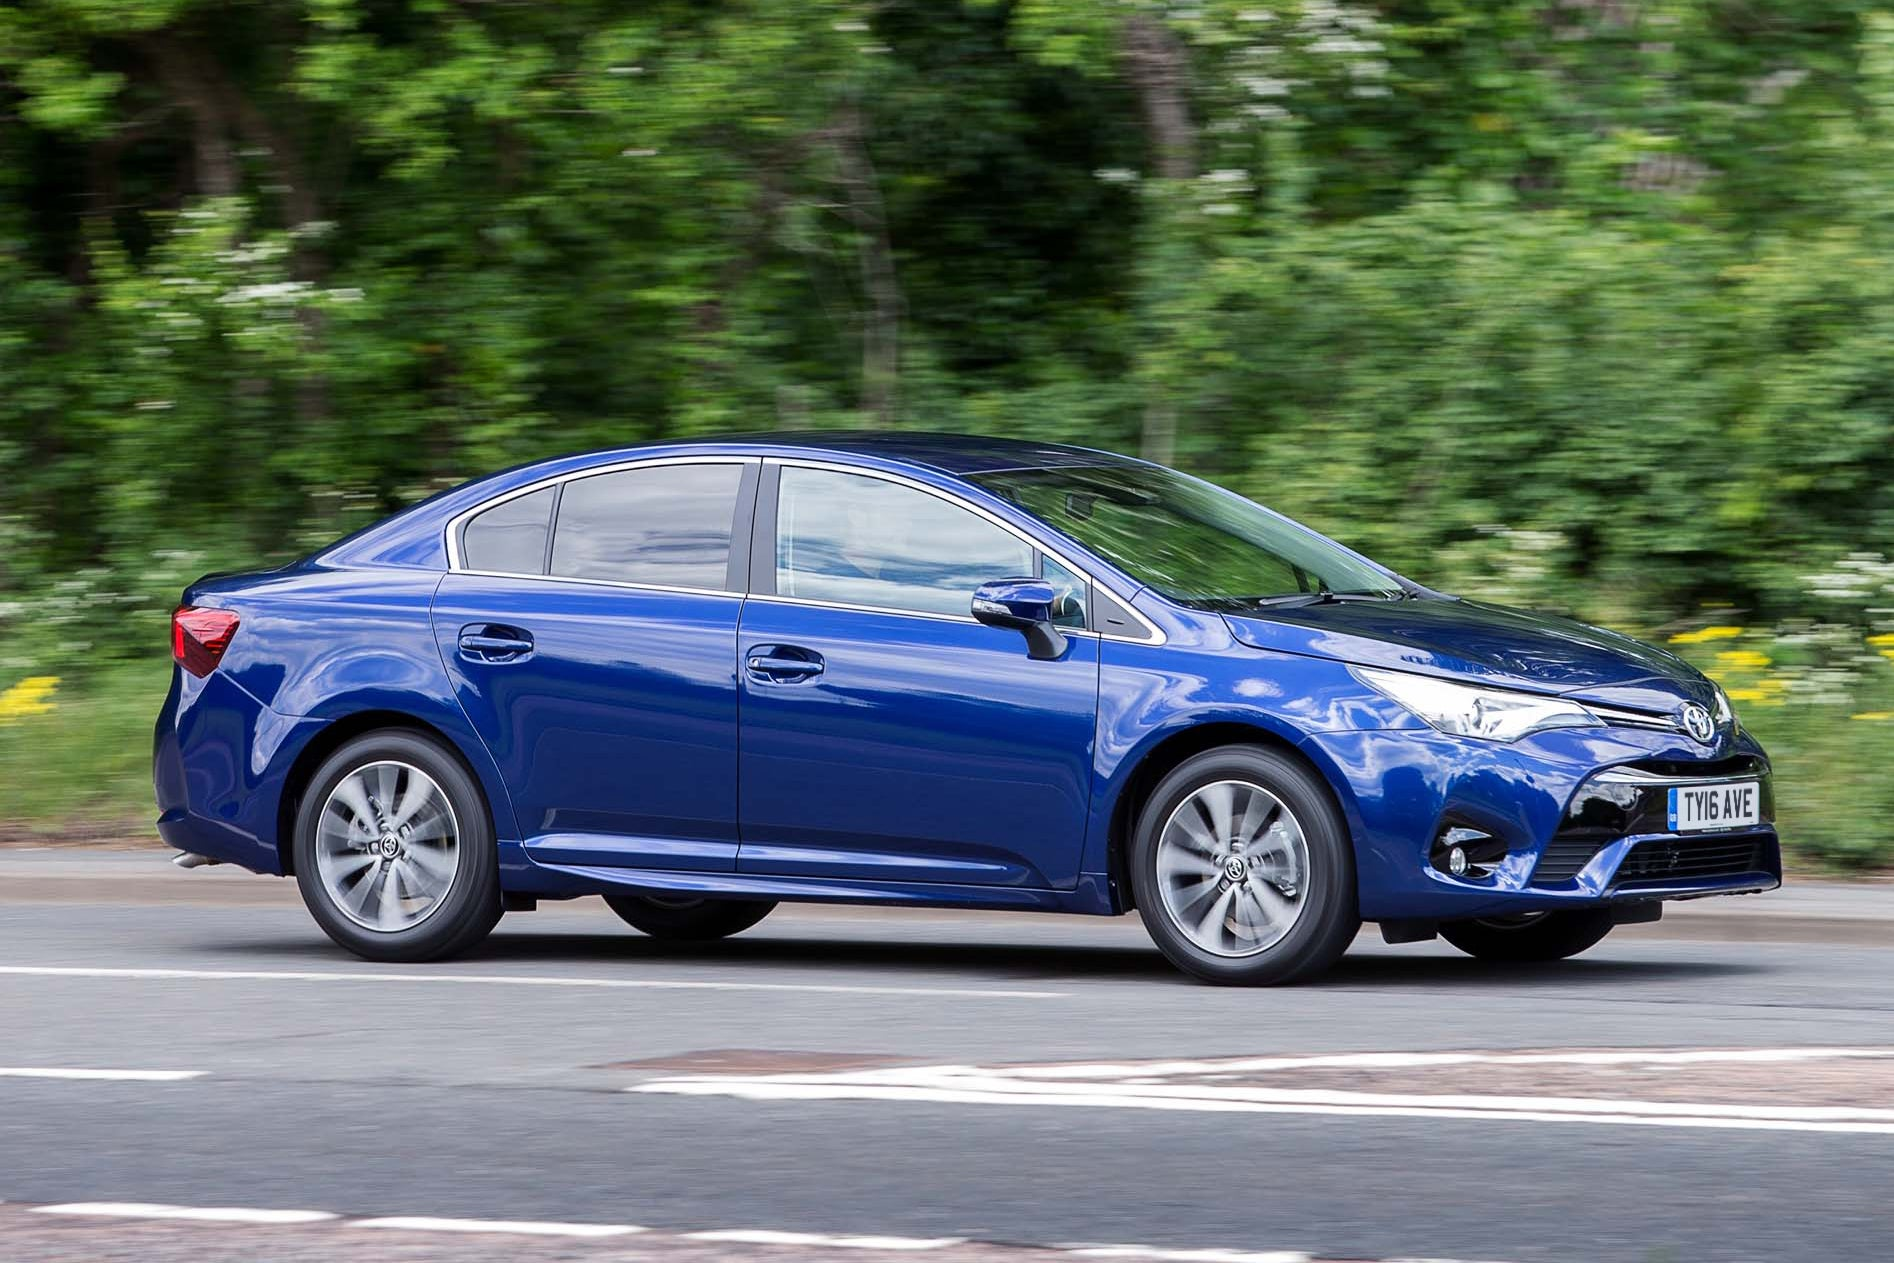 Toyota Avensis Right Side View